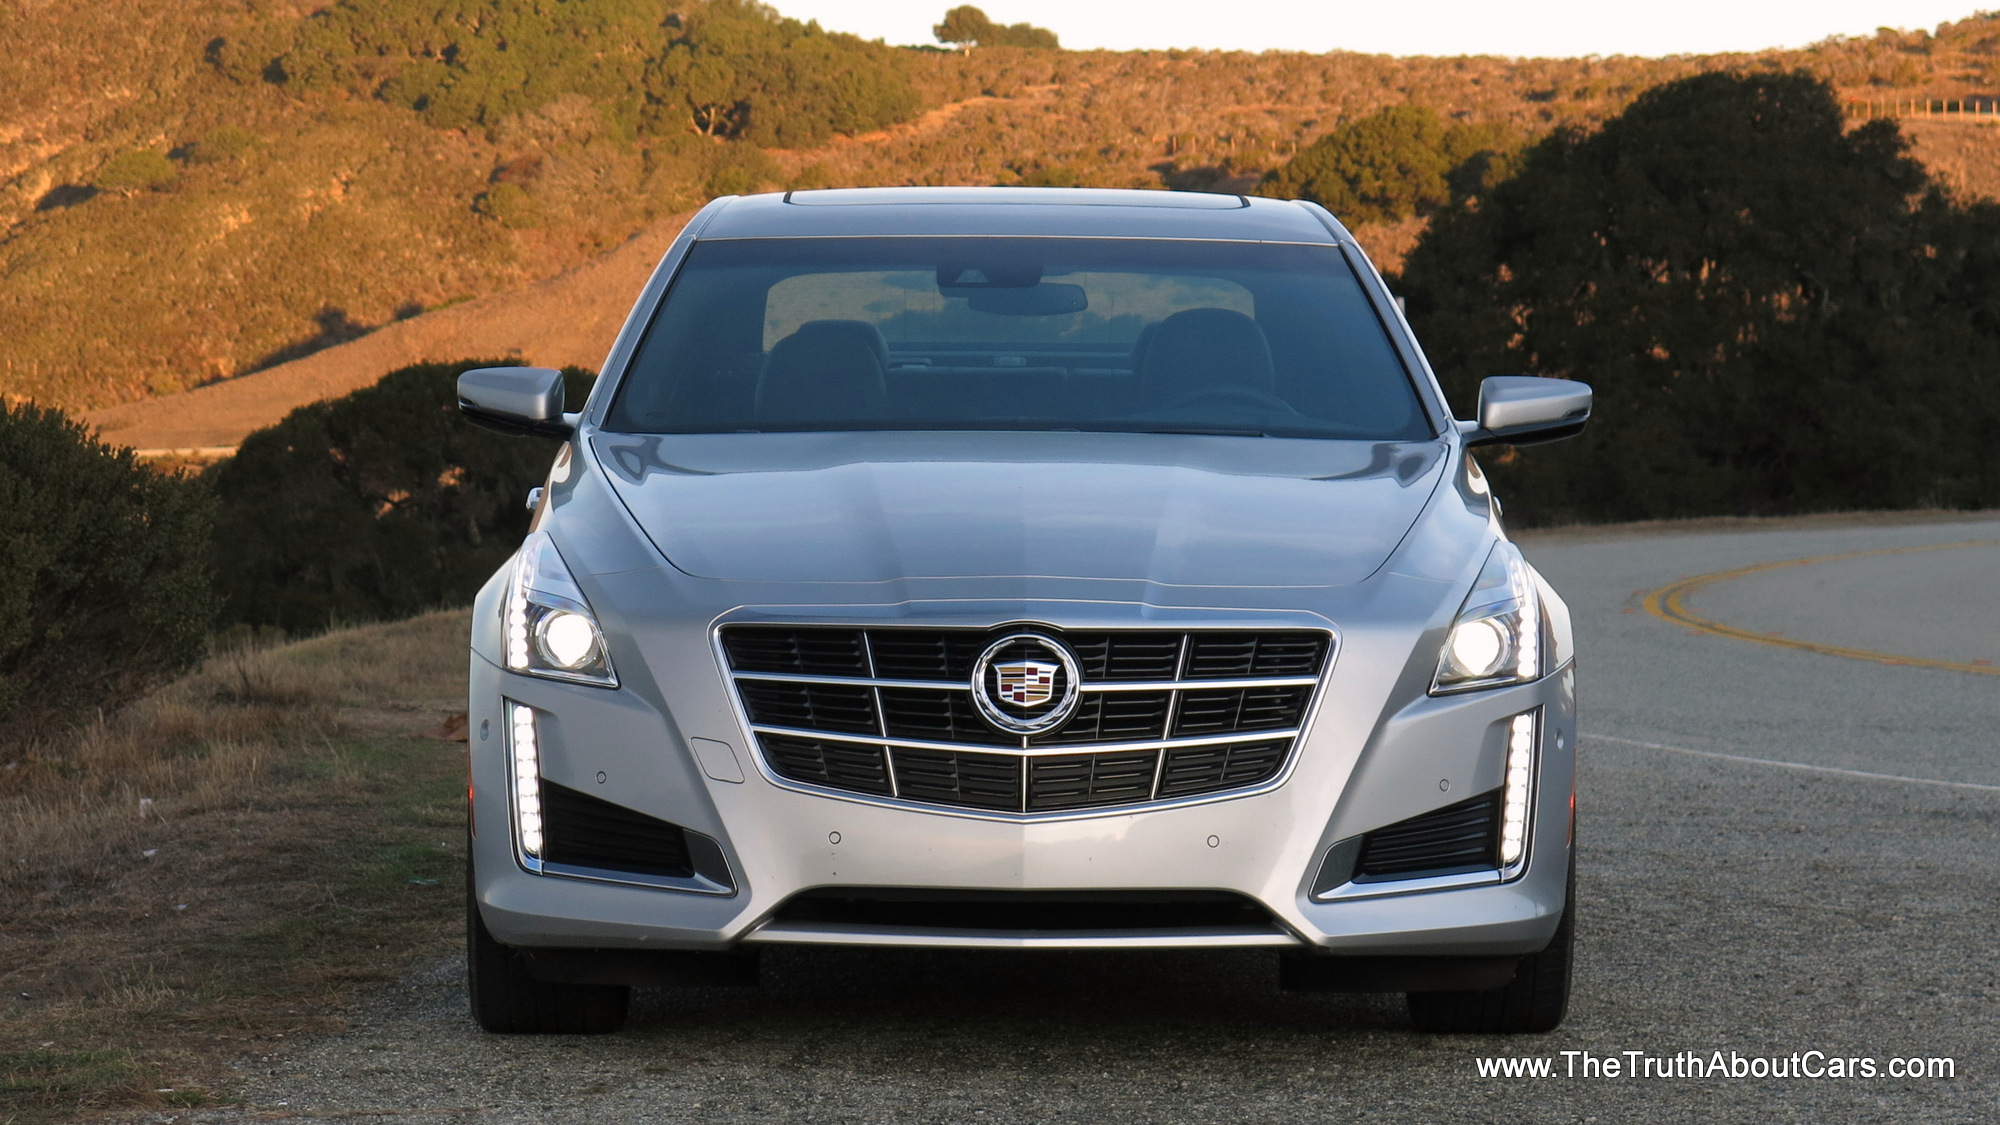 2013 cadillac ats 3 6 awd 010 the truth about cars. Black Bedroom Furniture Sets. Home Design Ideas